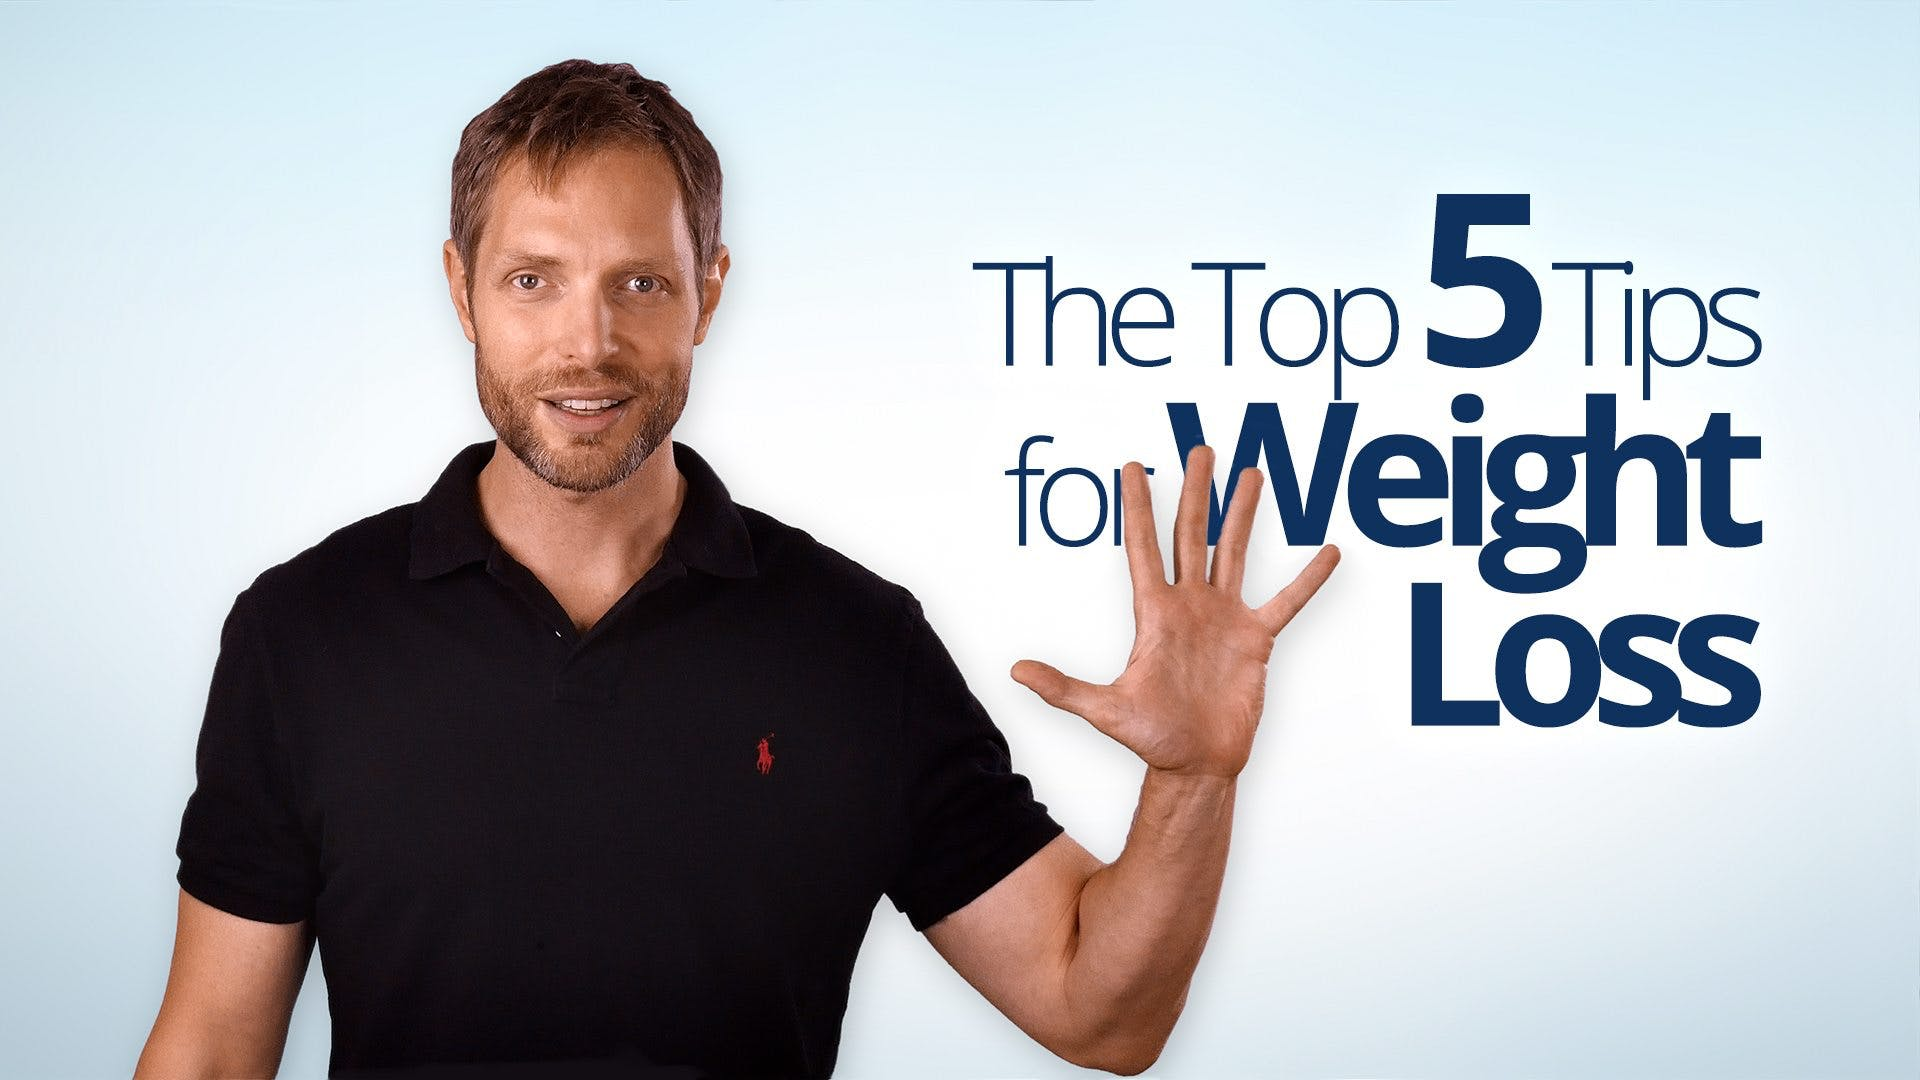 Top 5 Tips to Lose Weight